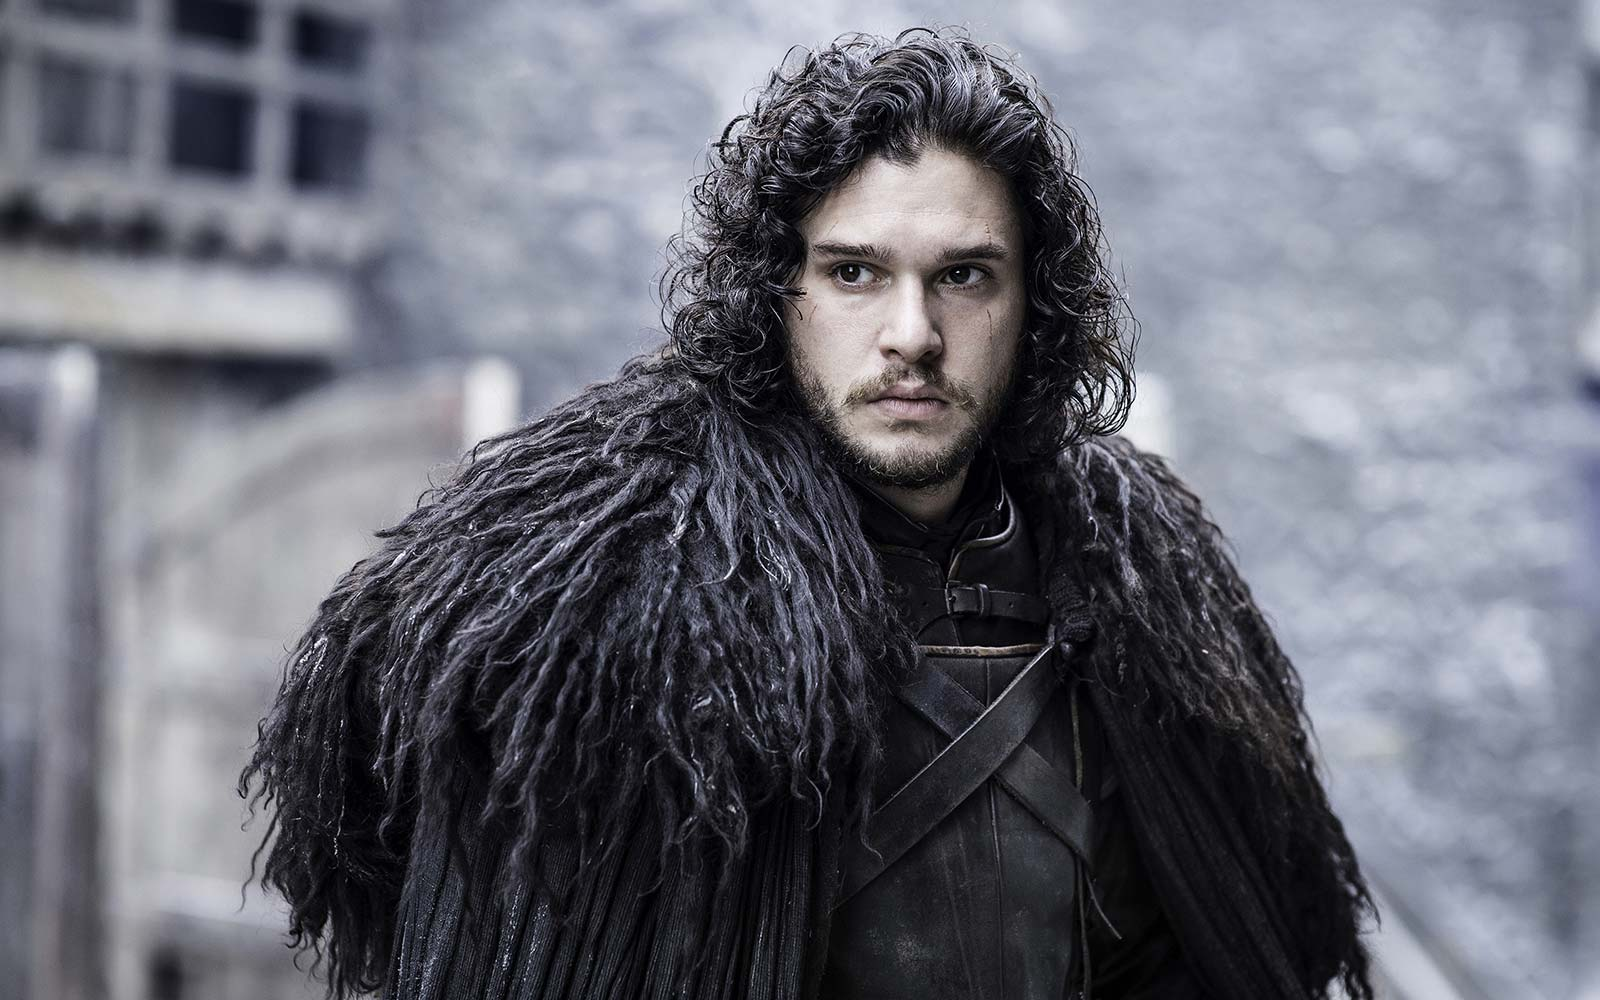 Halloween Costumes Pop Culture Inspiration Ideas Jon Snow Game of Thrones HBO